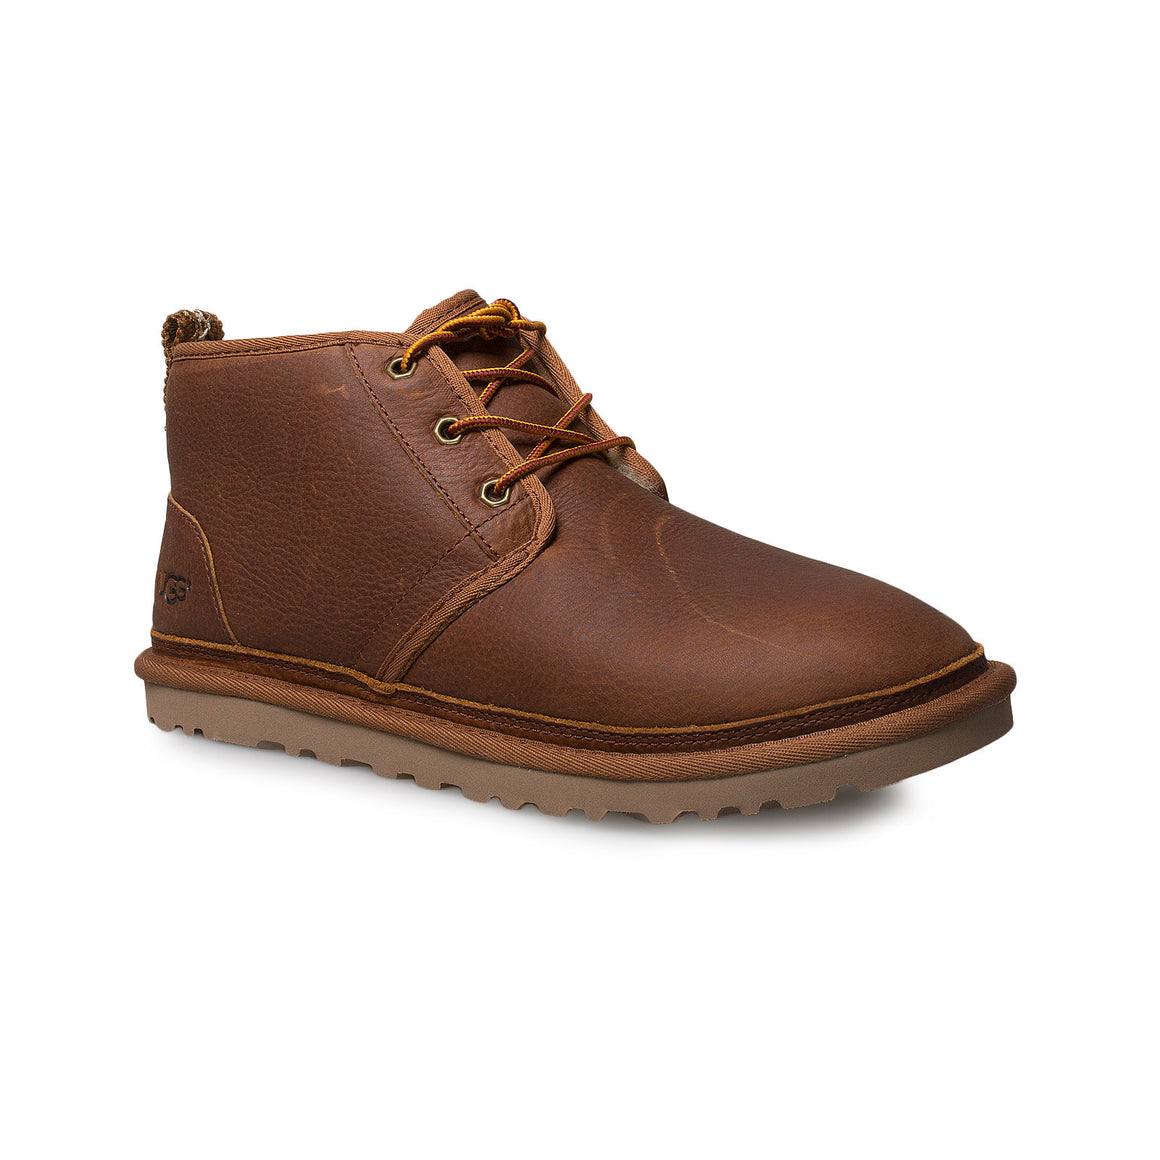 UGG Neumel Leather Chestnut Boots - Men's